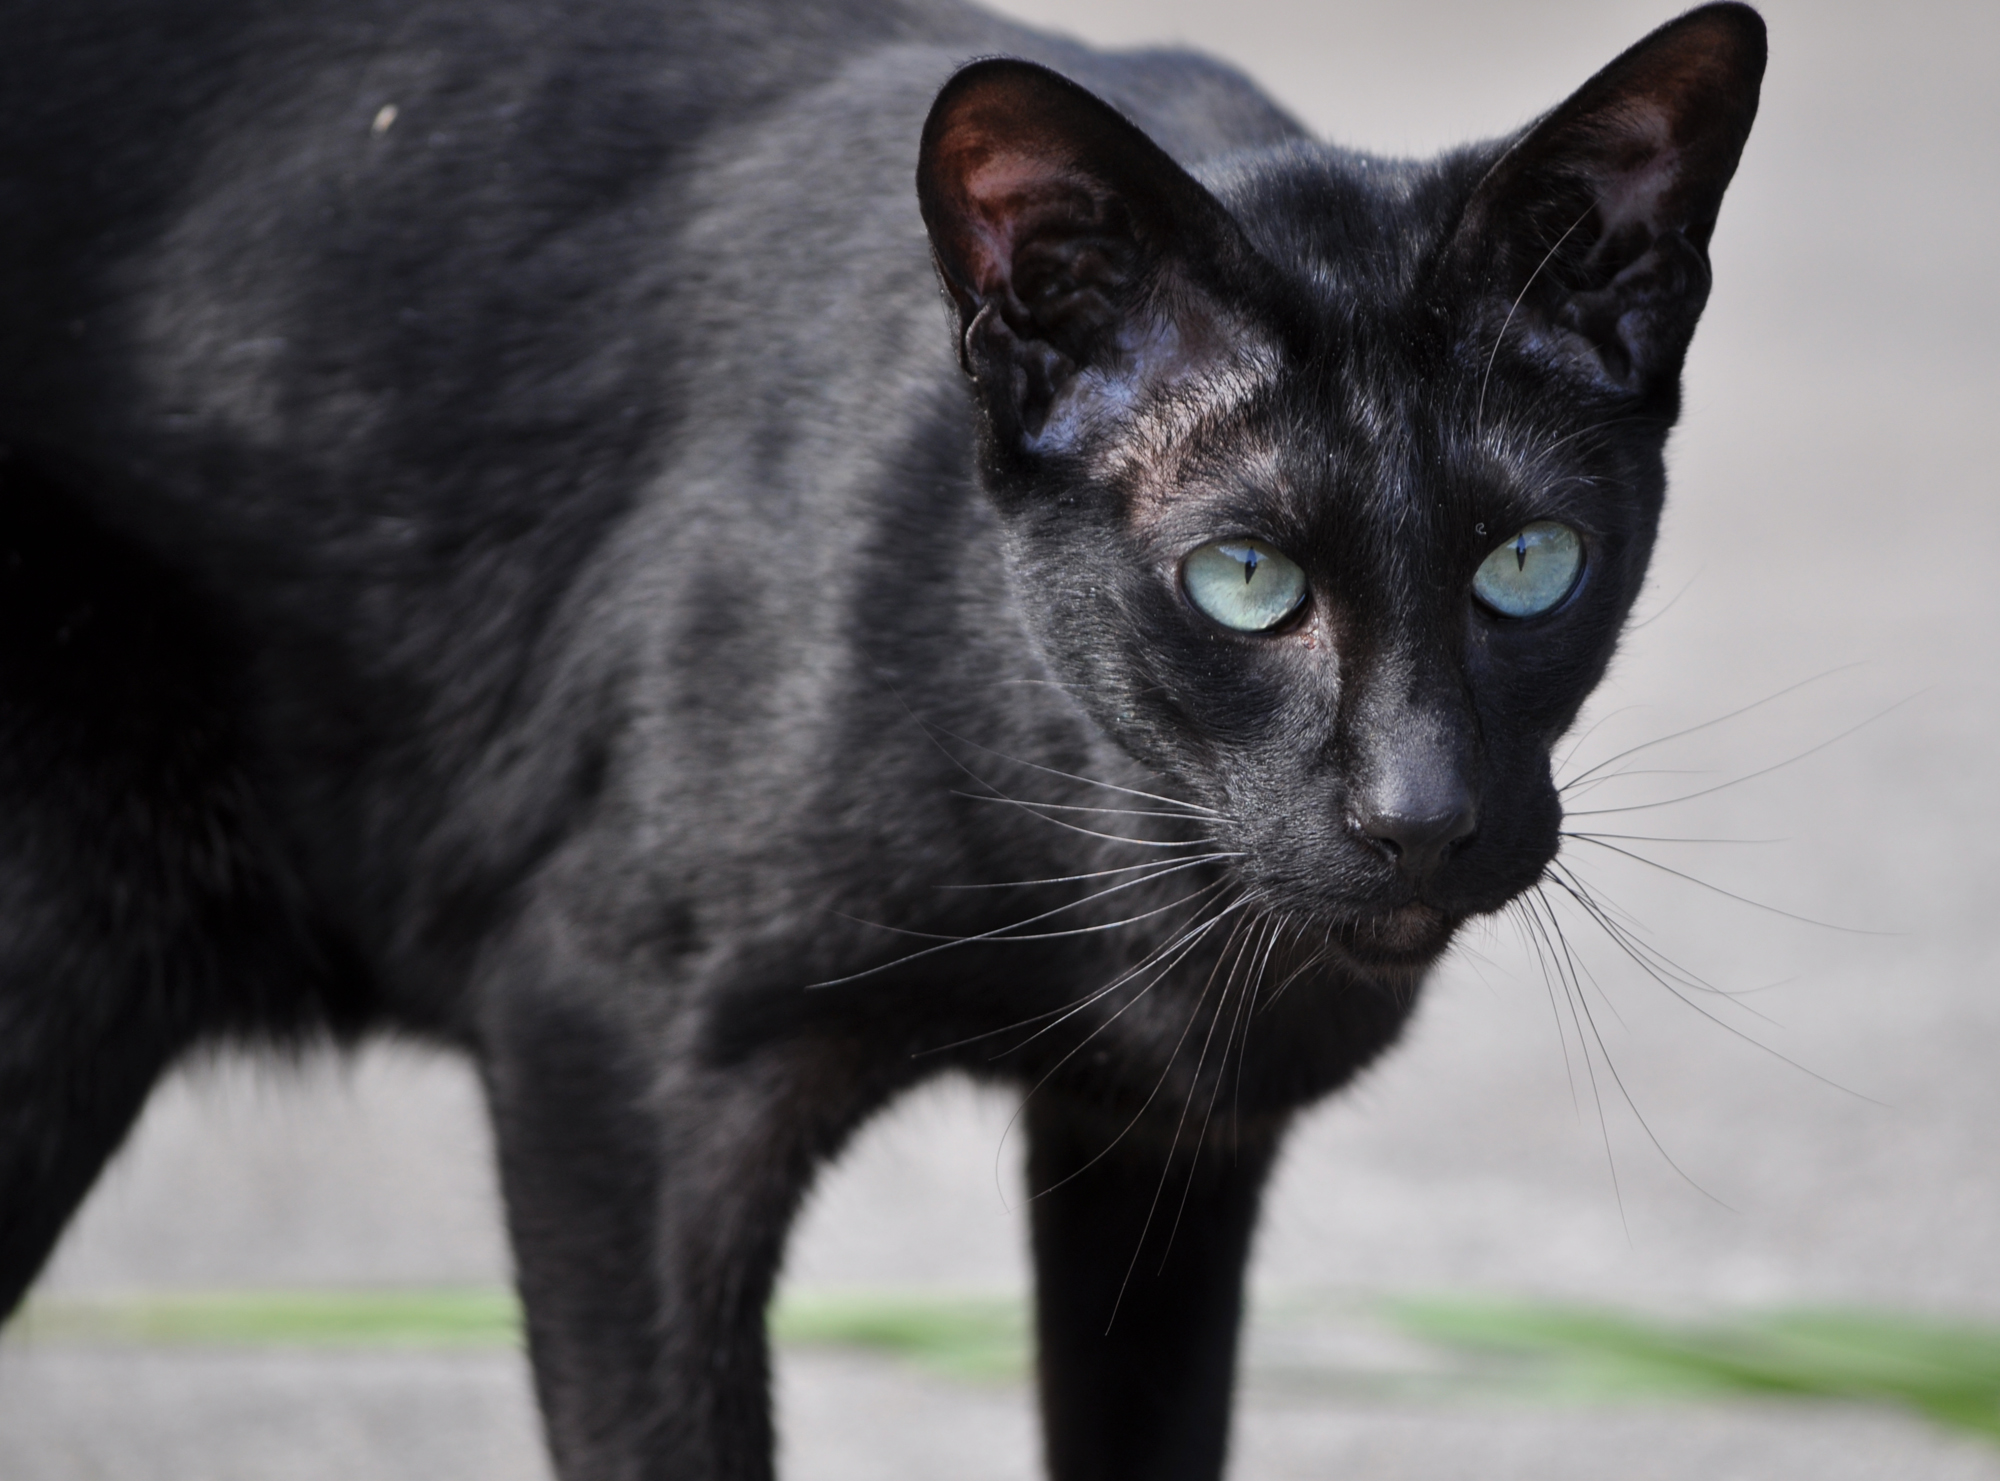 Drawn black cat domestic shorthair But that Siamese modern maintains